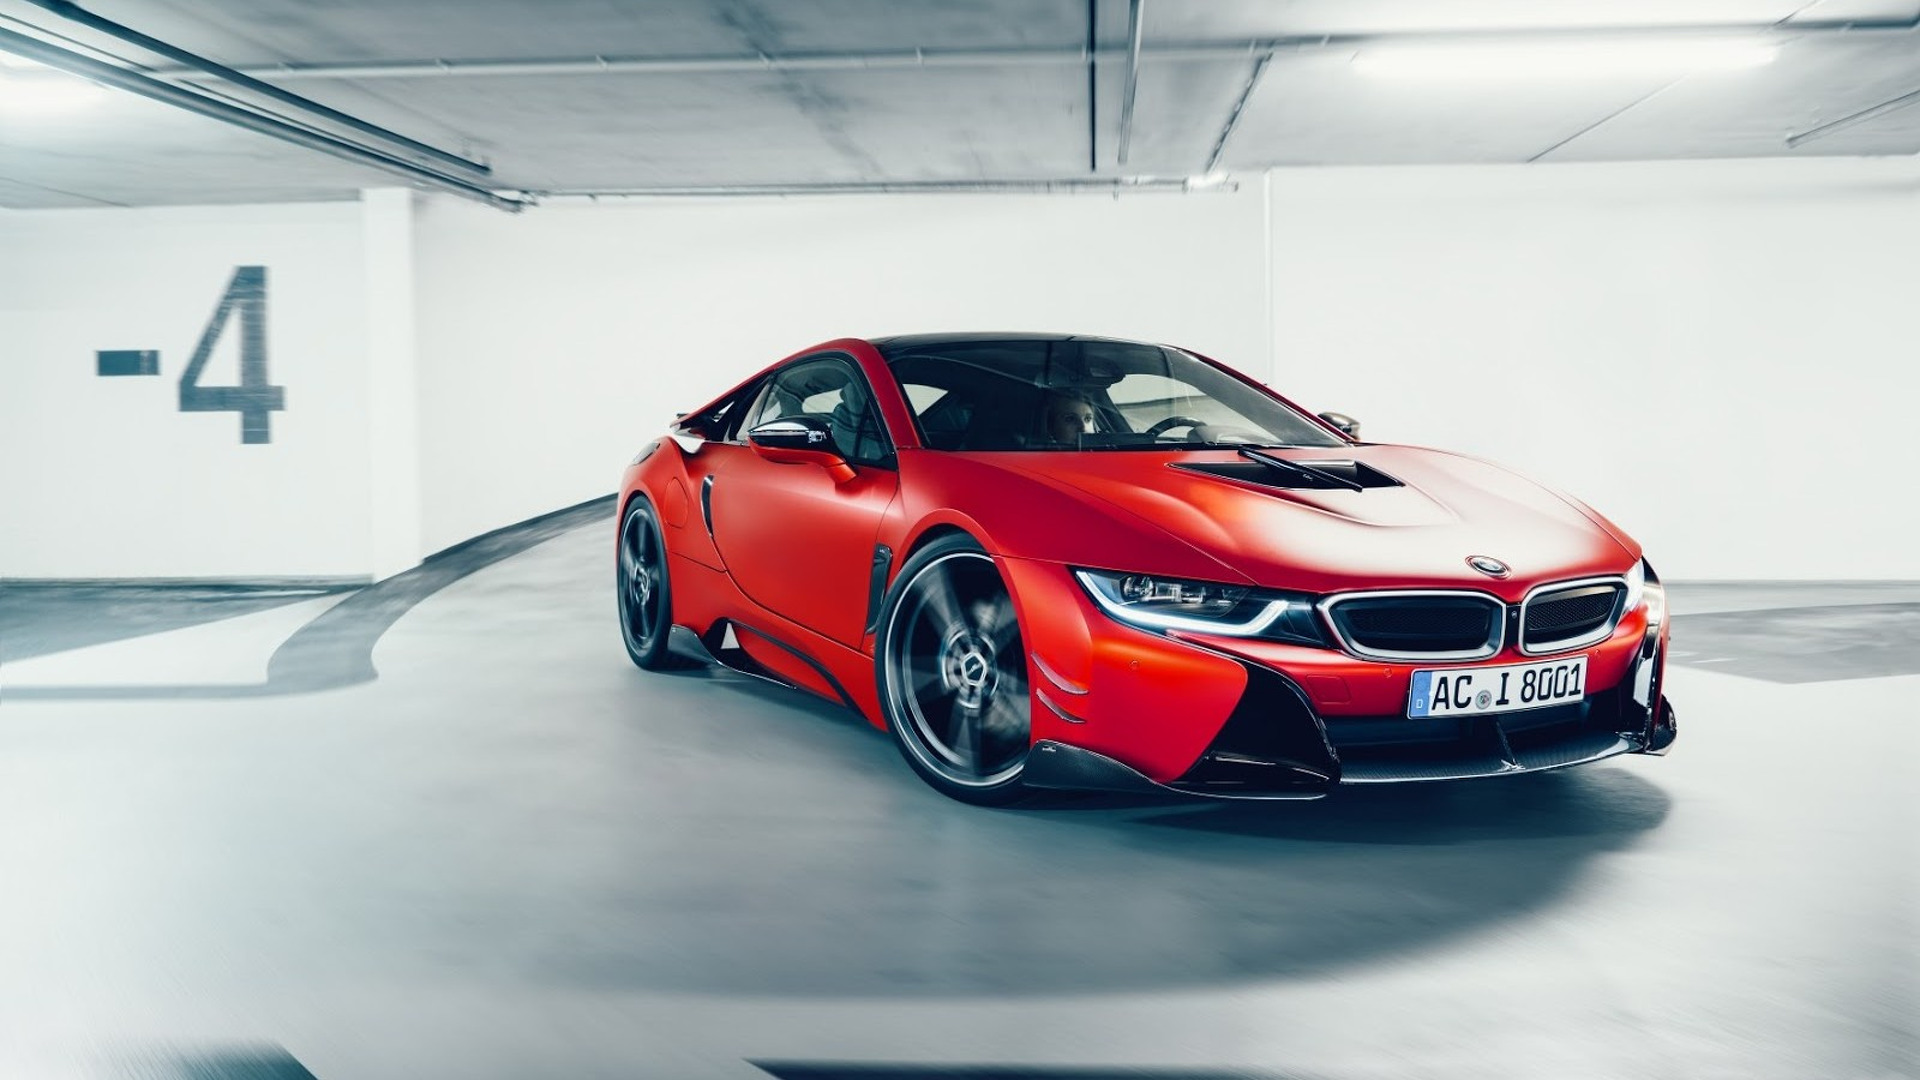 Bmw I8 By Ac Schnitzer On A Carbon Fiber Diet To Look Good In Geneva